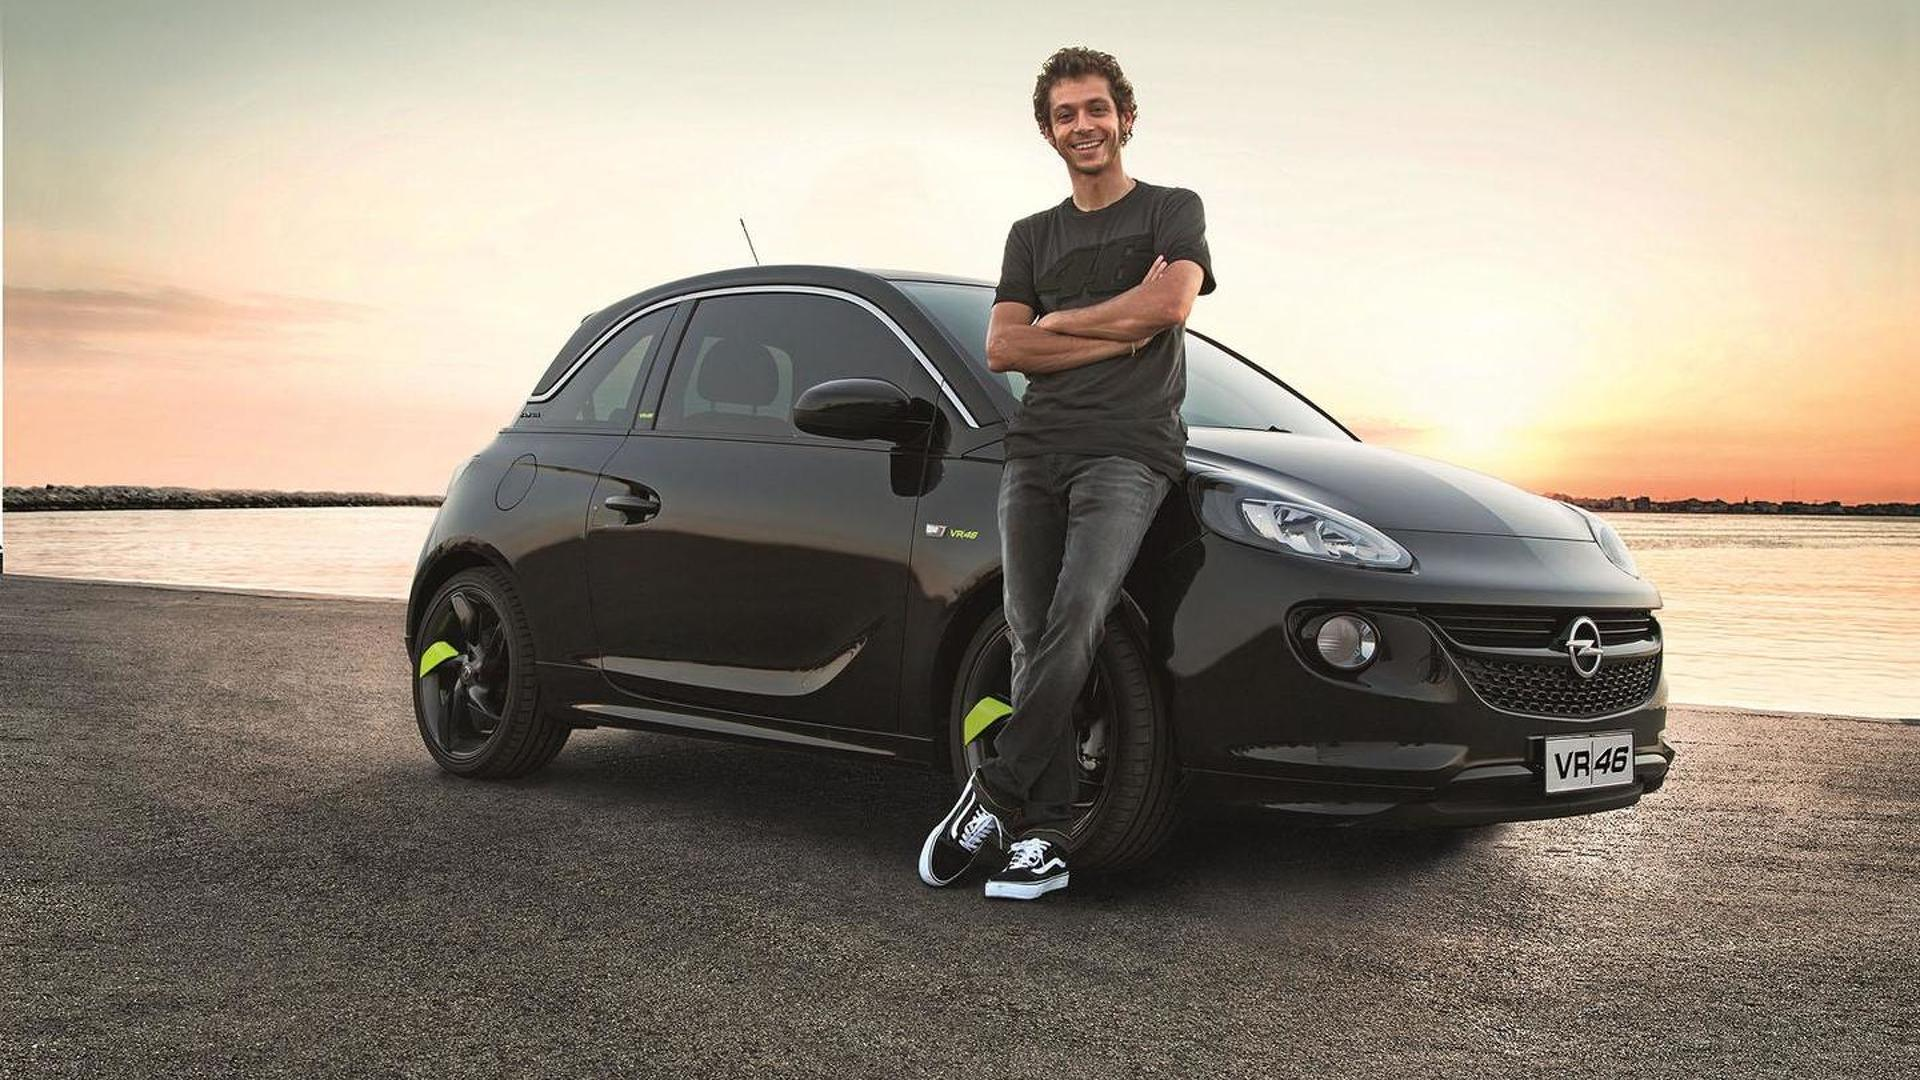 Opel ADAM VR 46 Limited Edition announced for Italy